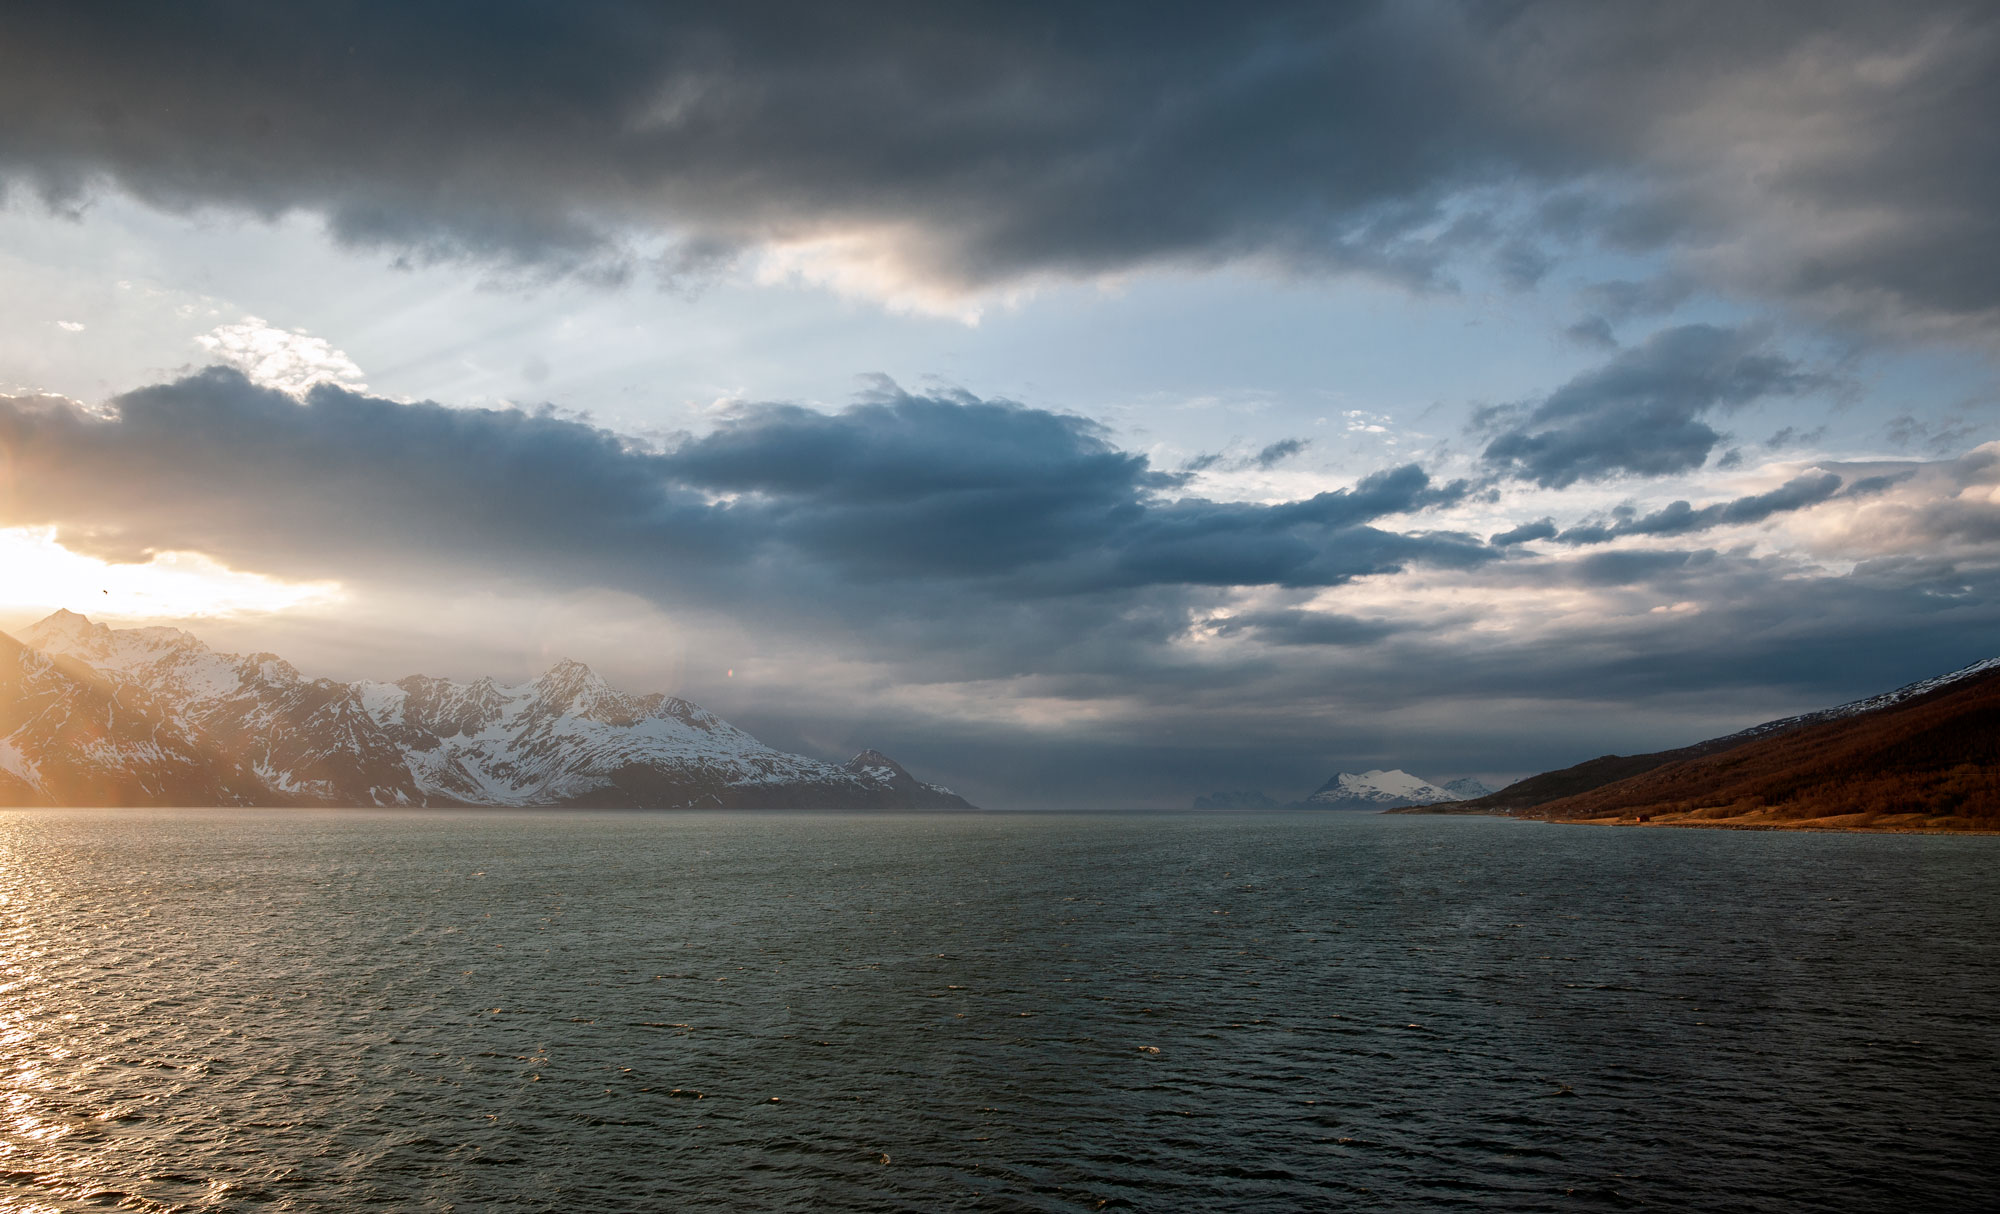 Somewhere between Finnmark and Troms